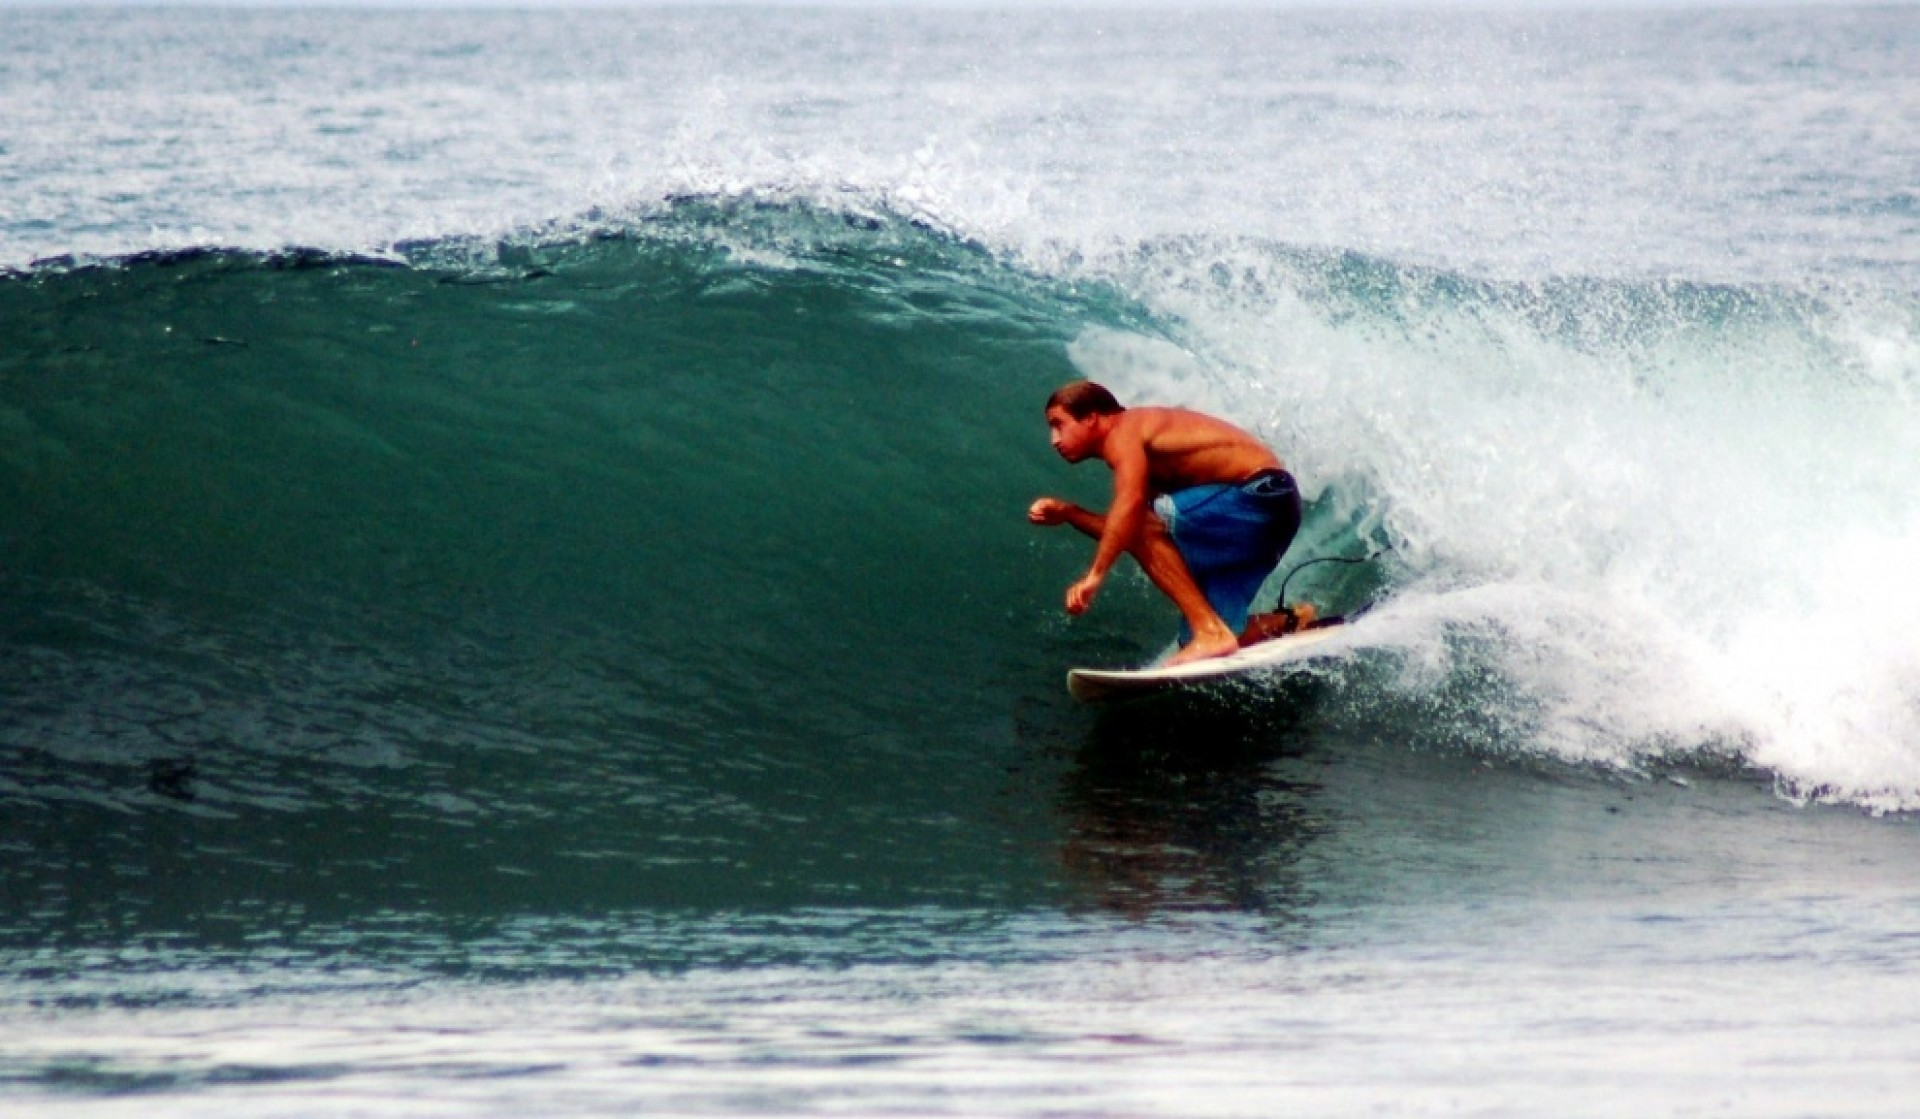 devon Keim's photo of Playa Hermosa